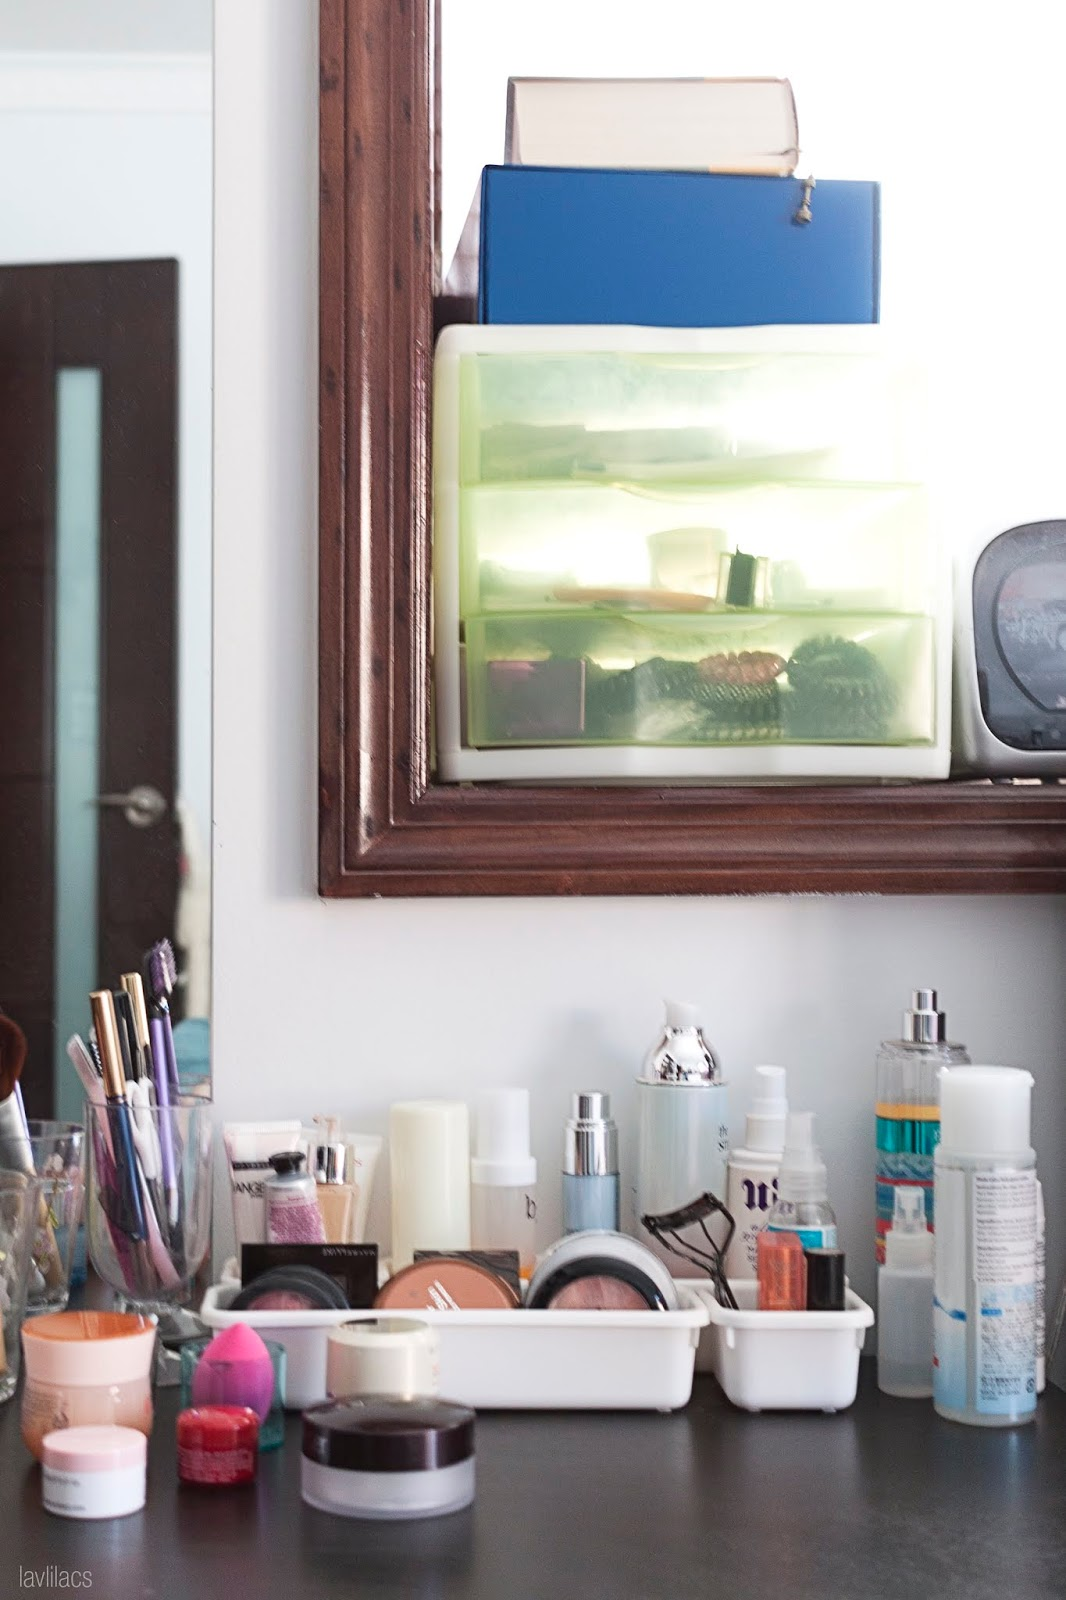 Daily makeup skincare products on top of bedside table portrait view